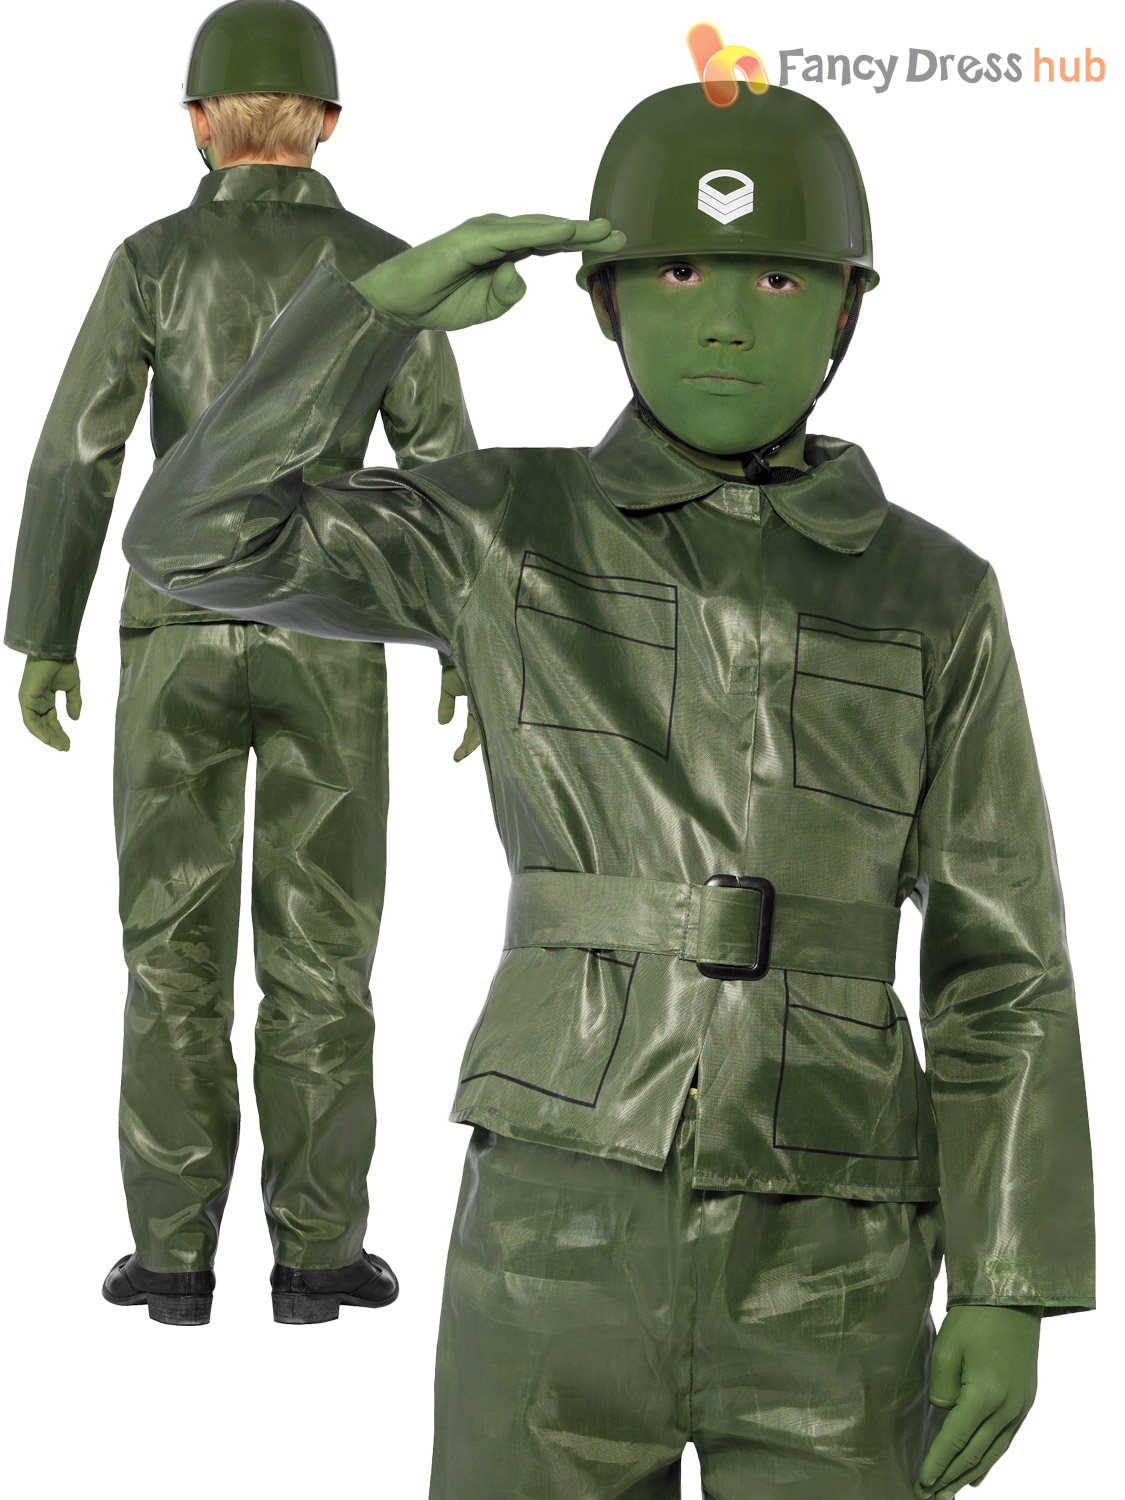 Soldier Toys For Boys : Boys green army plastic toy soldier kids fancy dress up